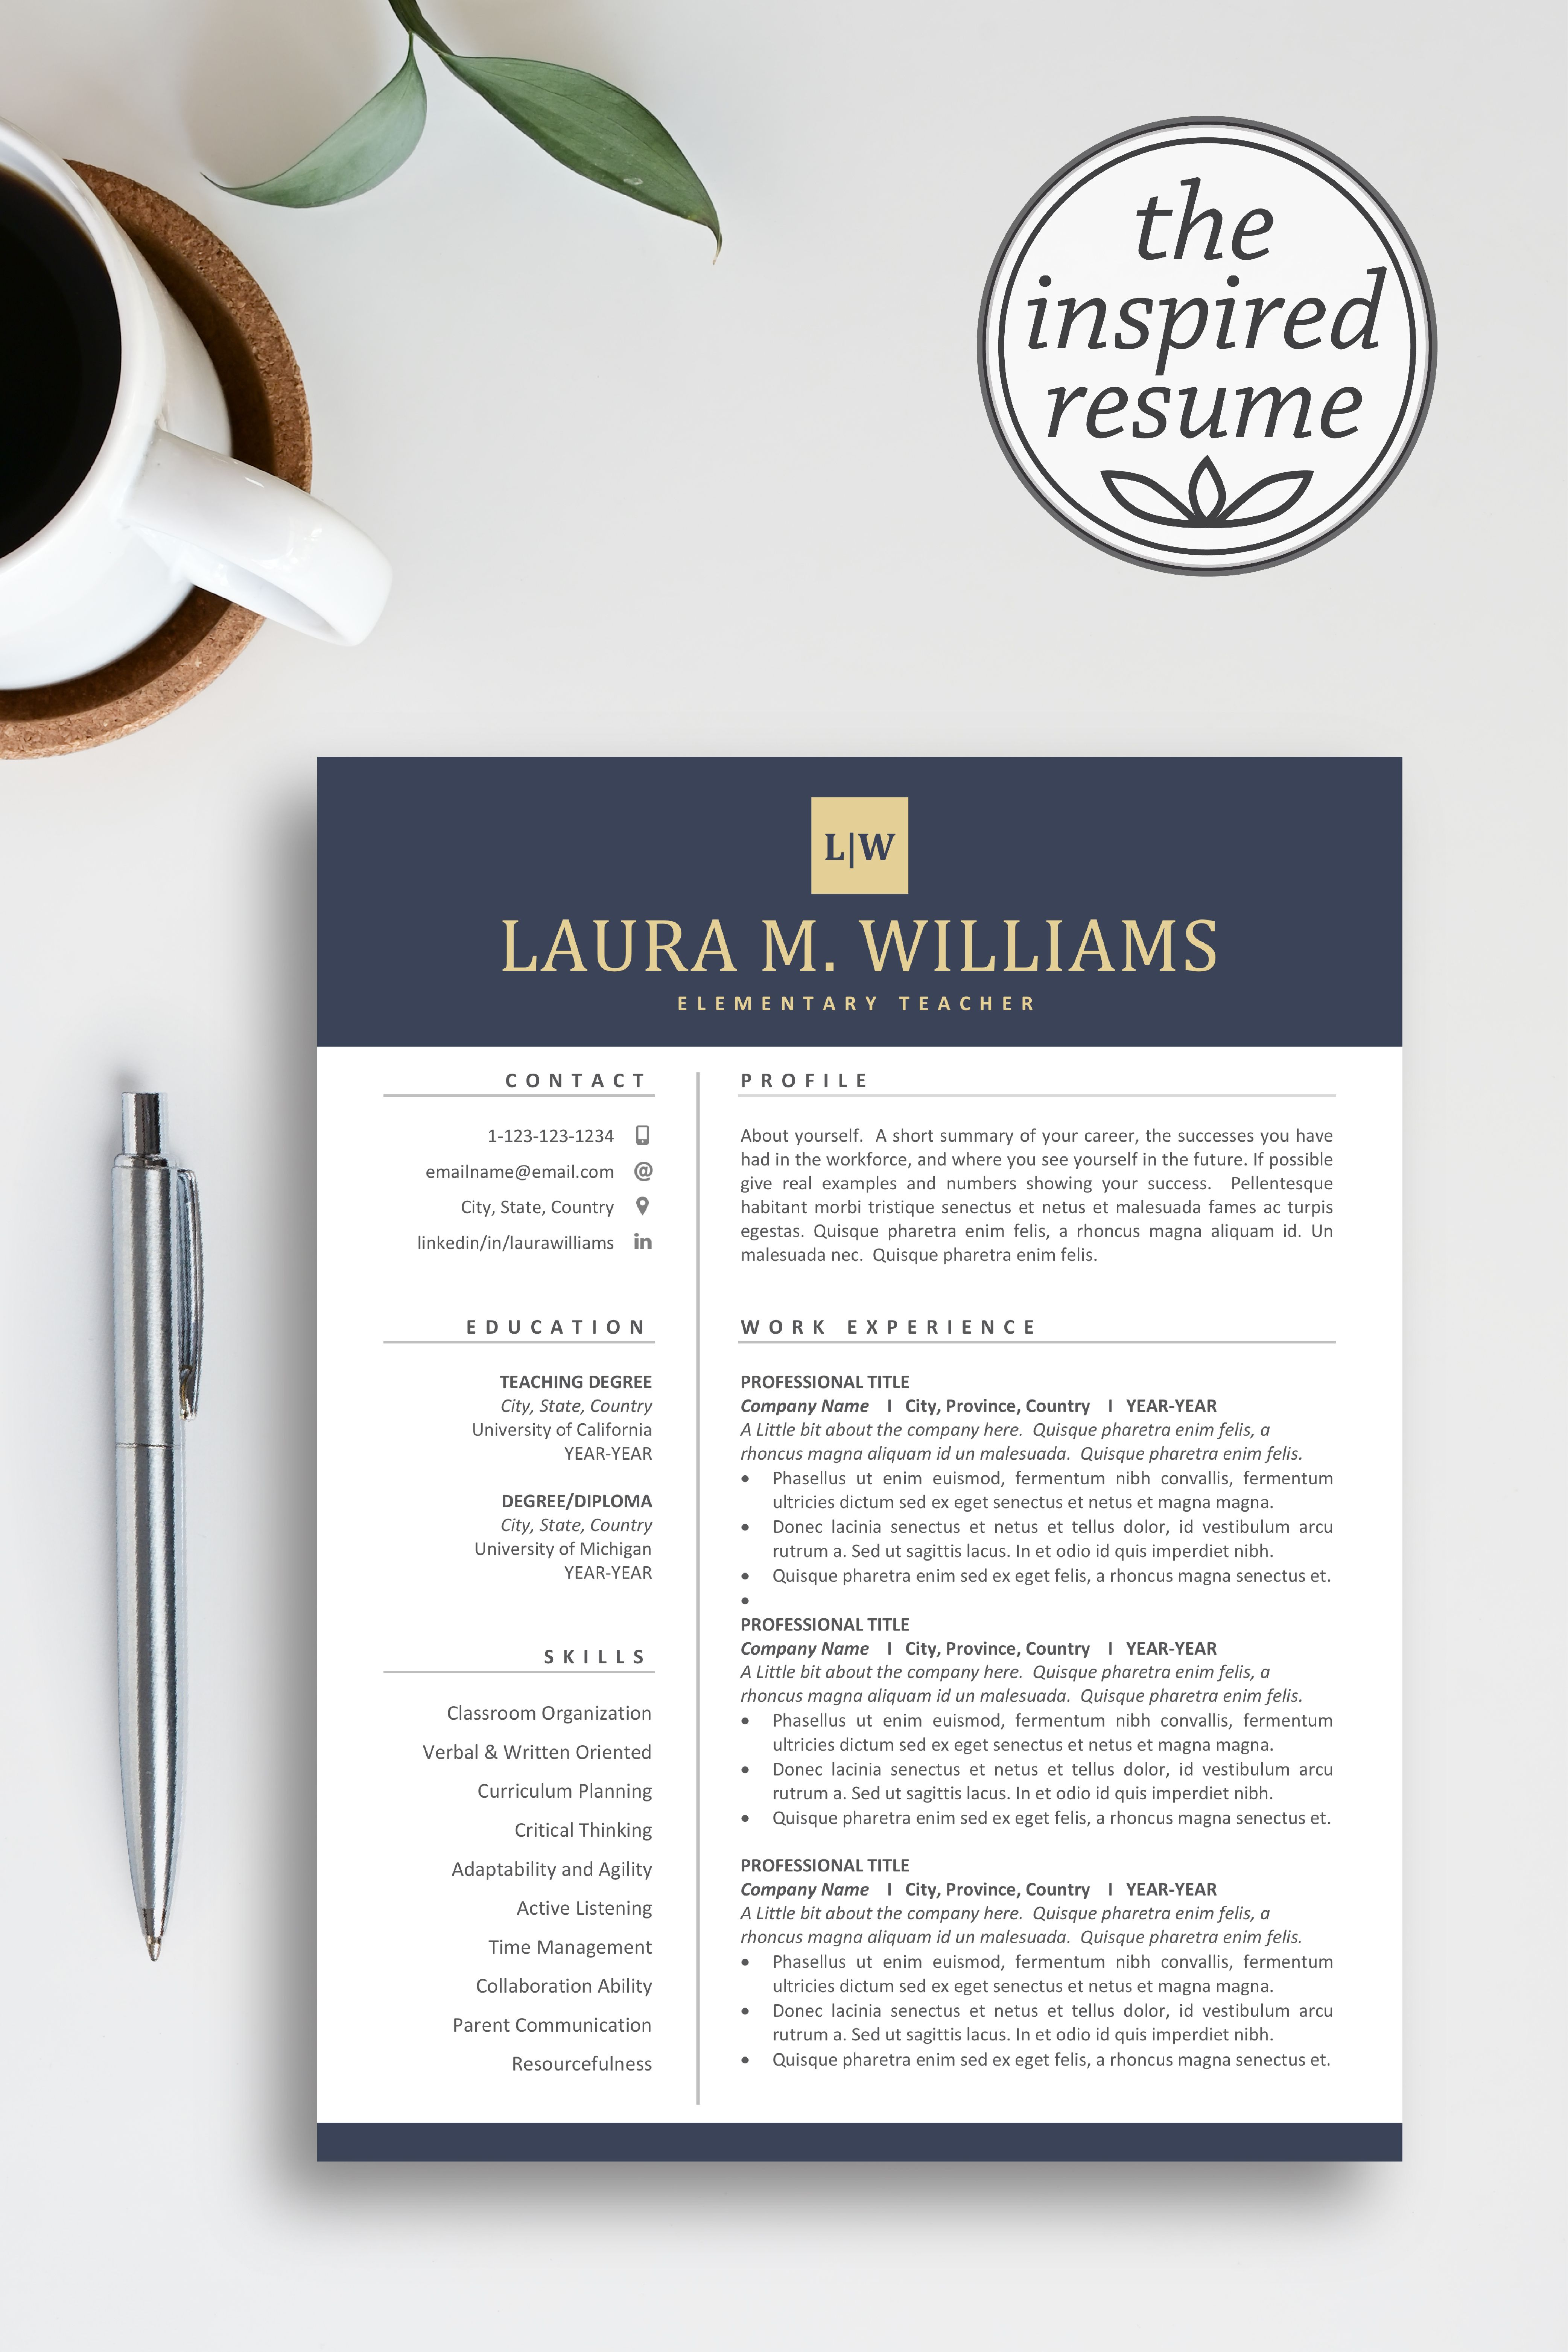 Land your dream job with a standout, professional resume